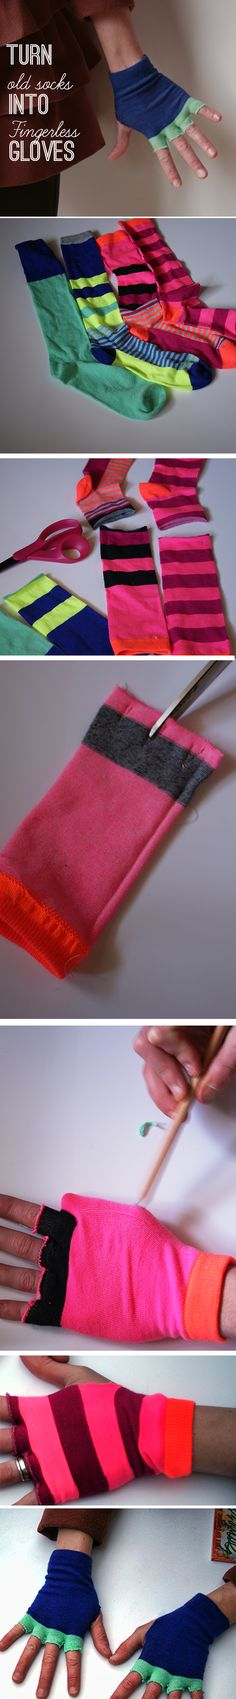 Upcycle old socks to fingerless gloves in this EASY diy.